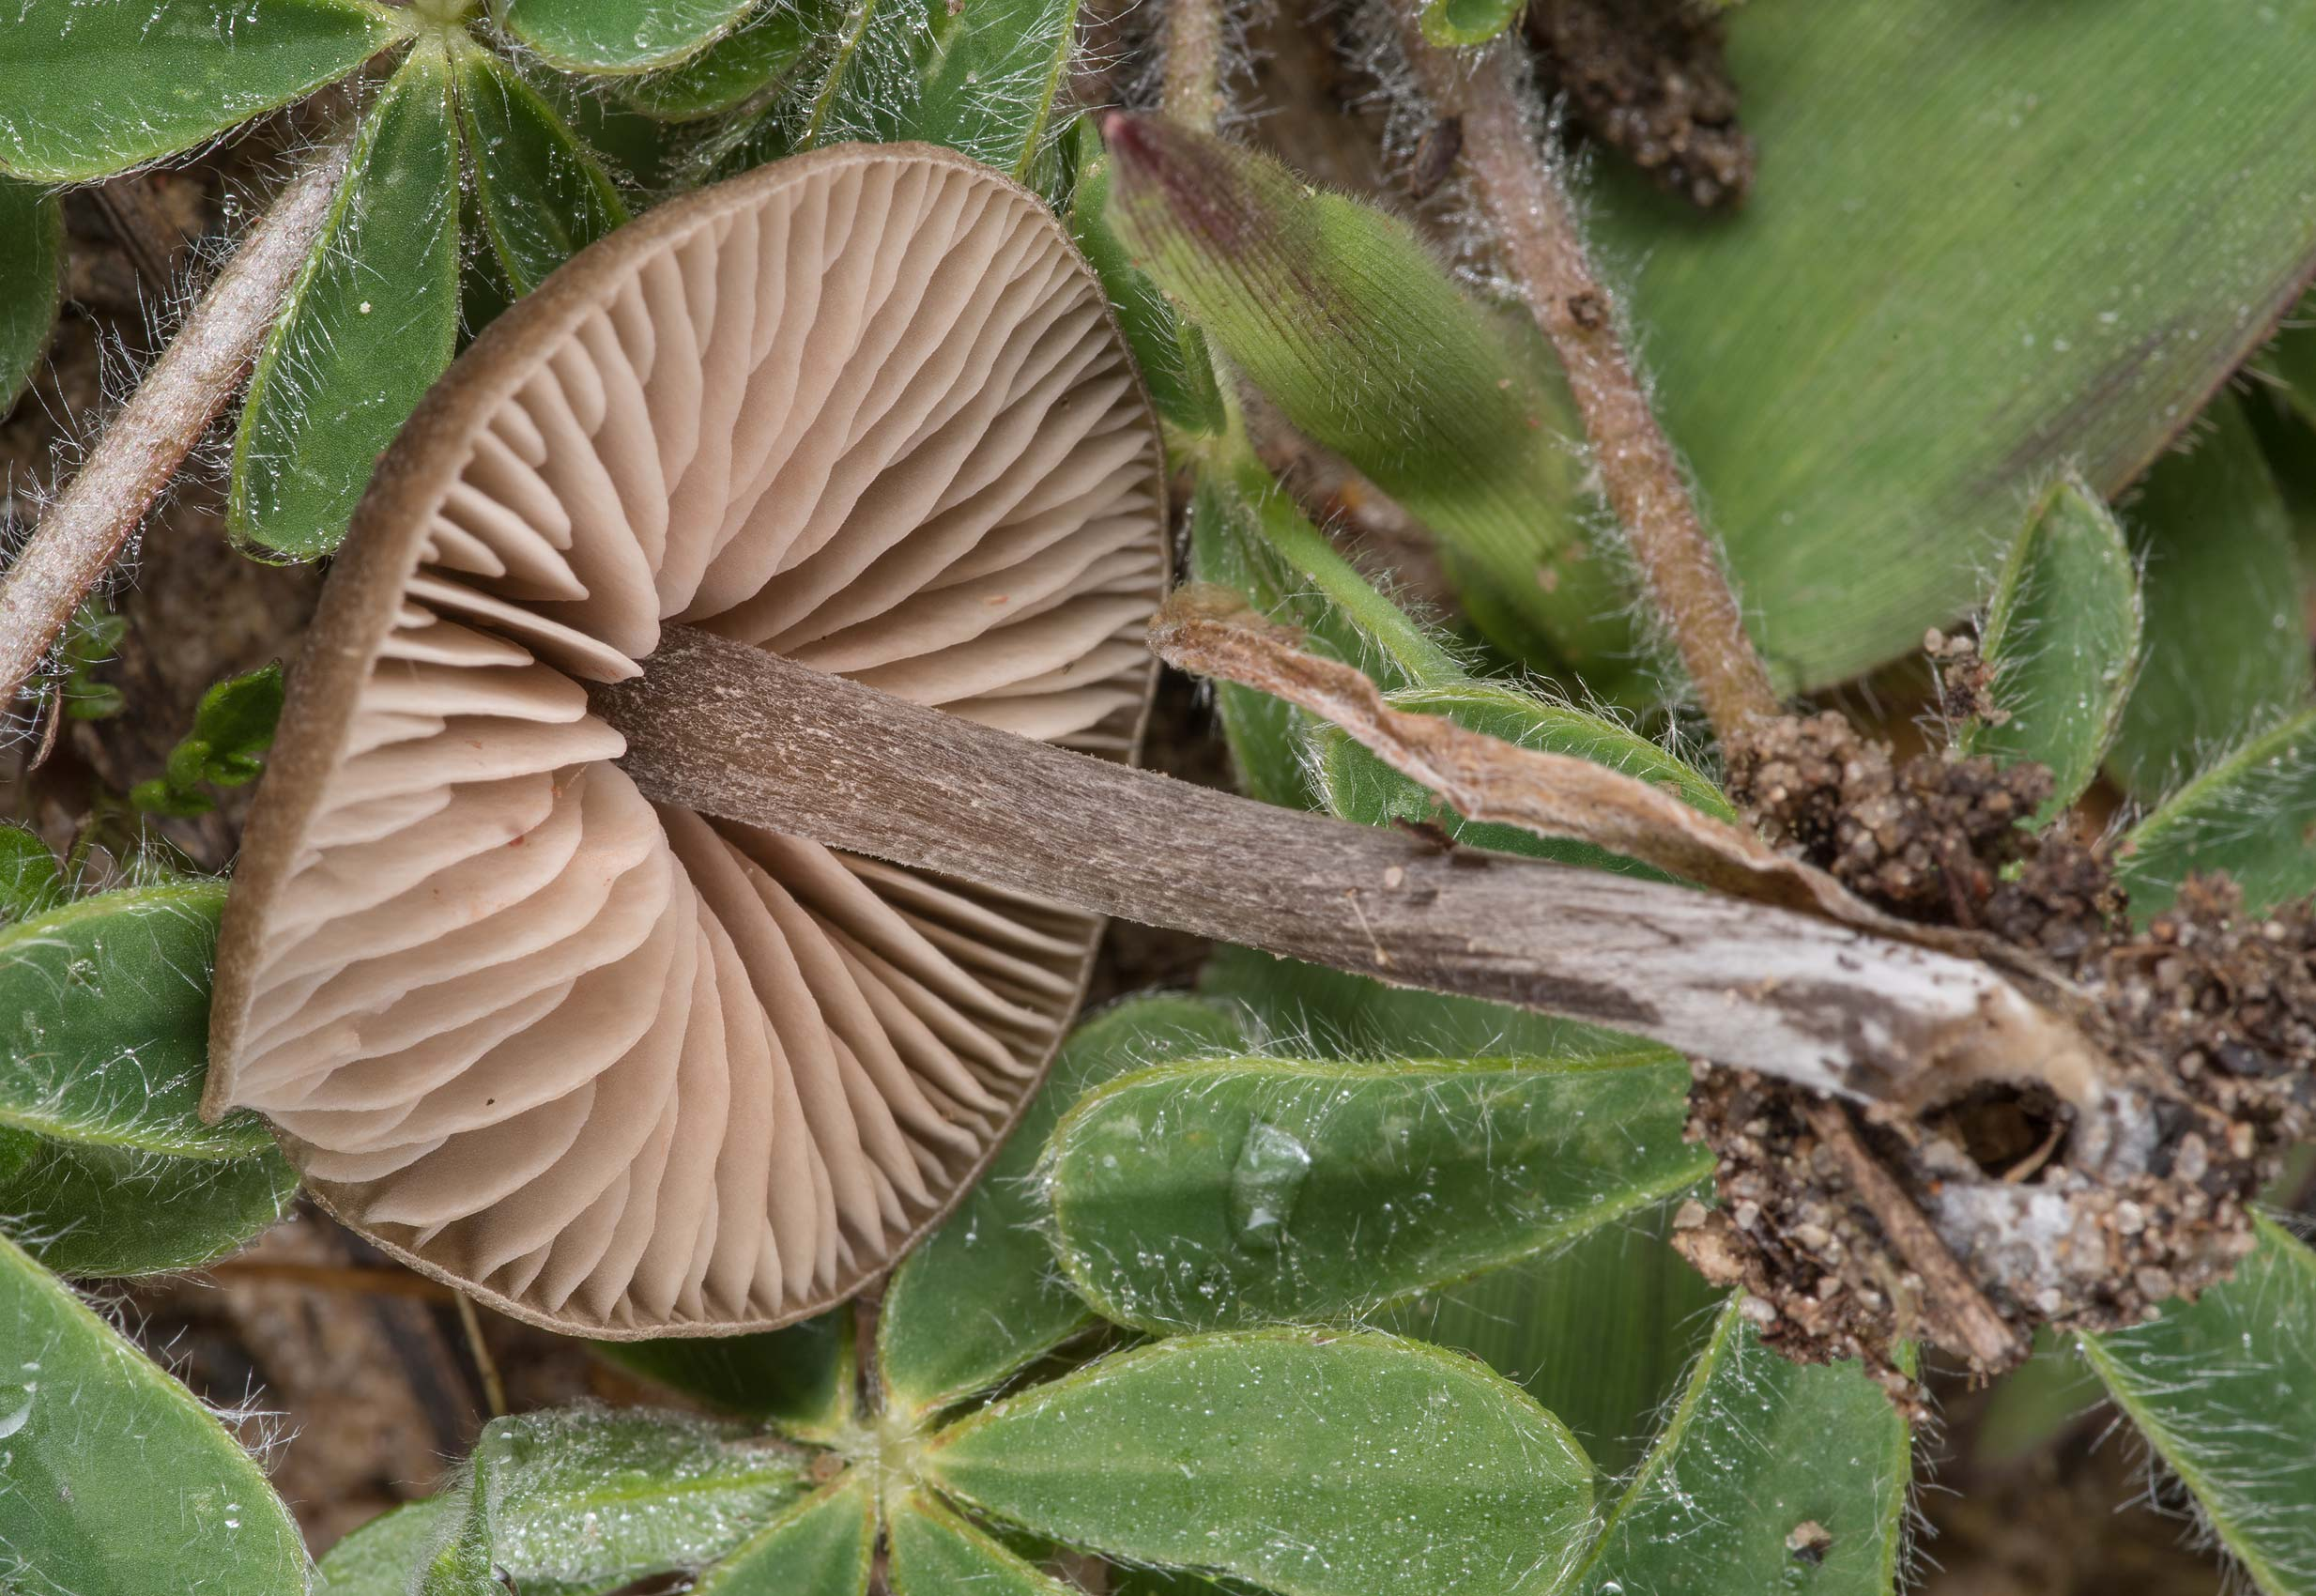 Gills of a small Nolanea mushroom on a meadow in...State Historic Site. Washington, Texas